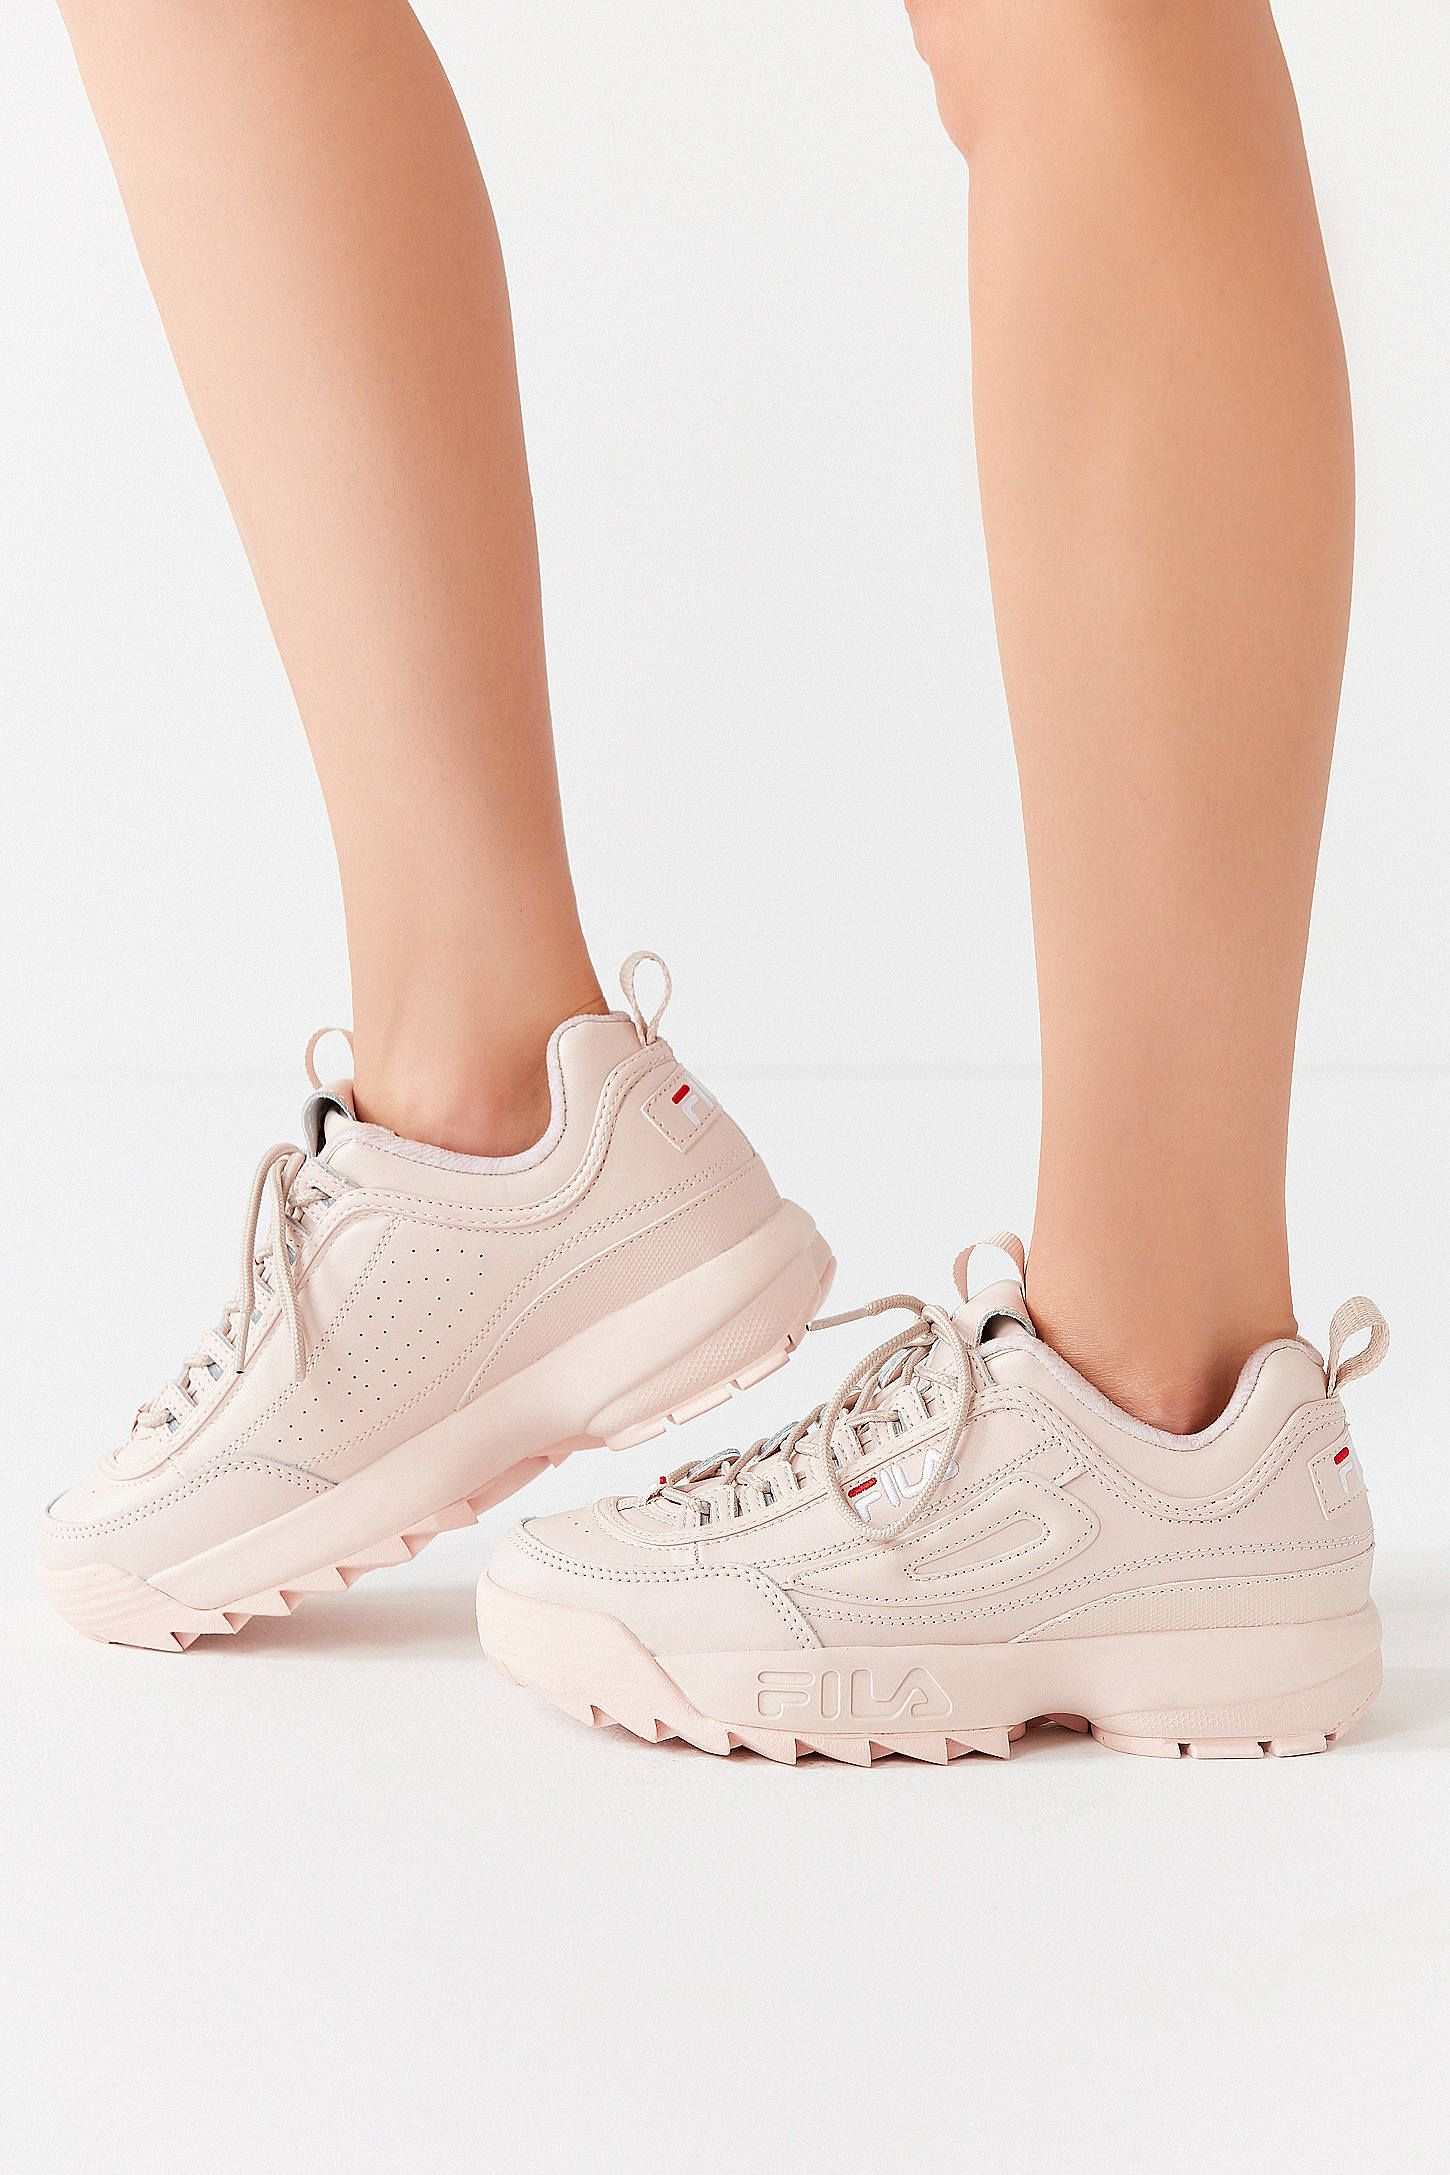 1623adae7e6 Shop FILA Disruptor II Premium Mono Sneaker at Urban Outfitters today. We  carry all the latest styles